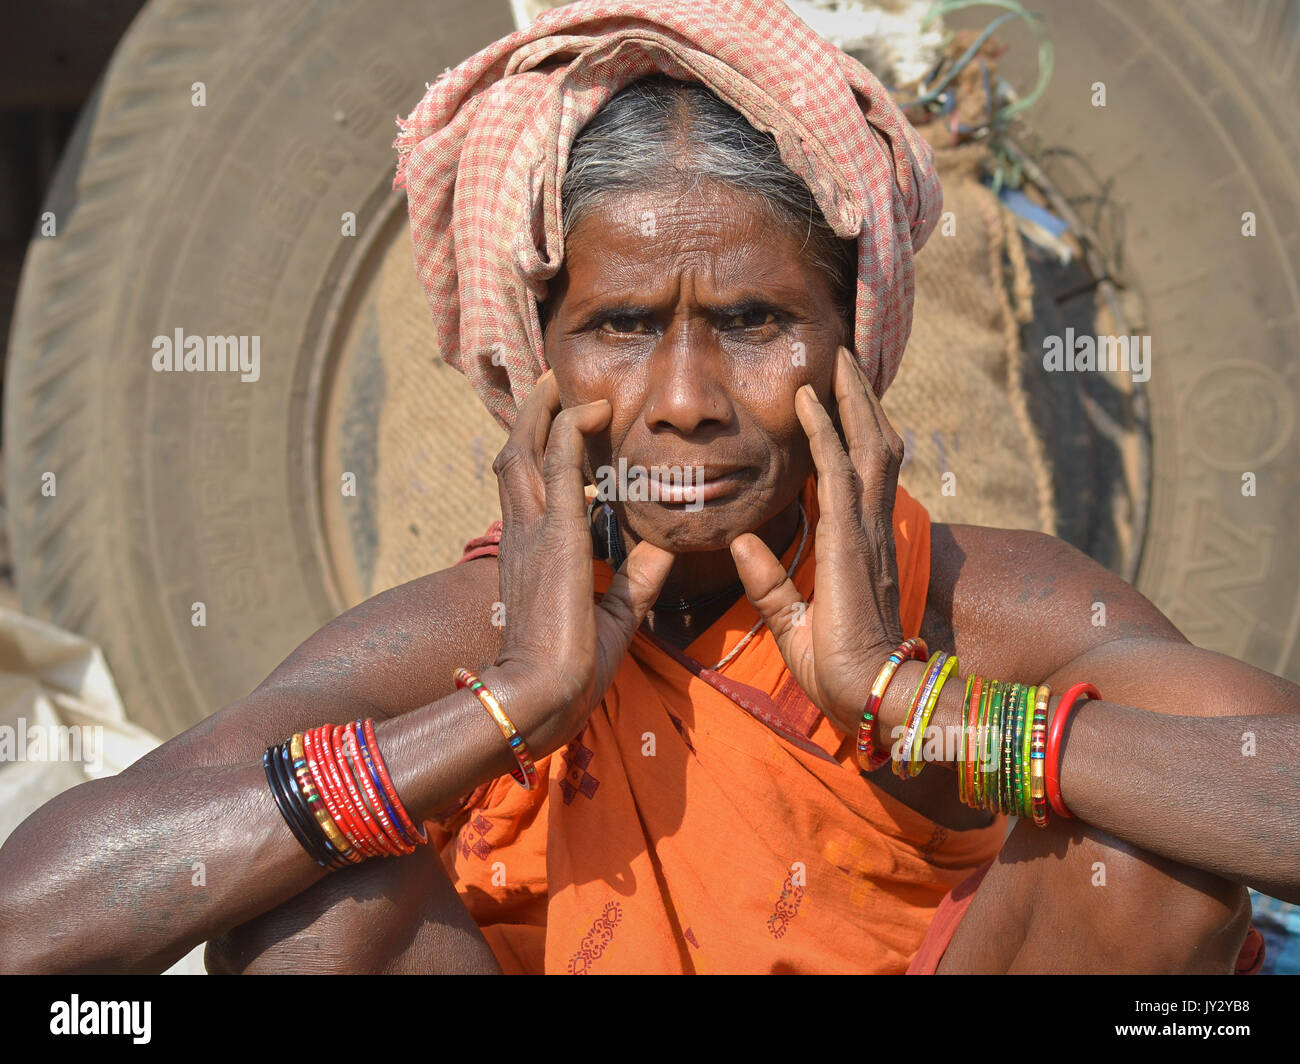 Closeup street portrait of an old Indian Adivasi market woman, resting her chin on her hands (...and showing her - Stock Image